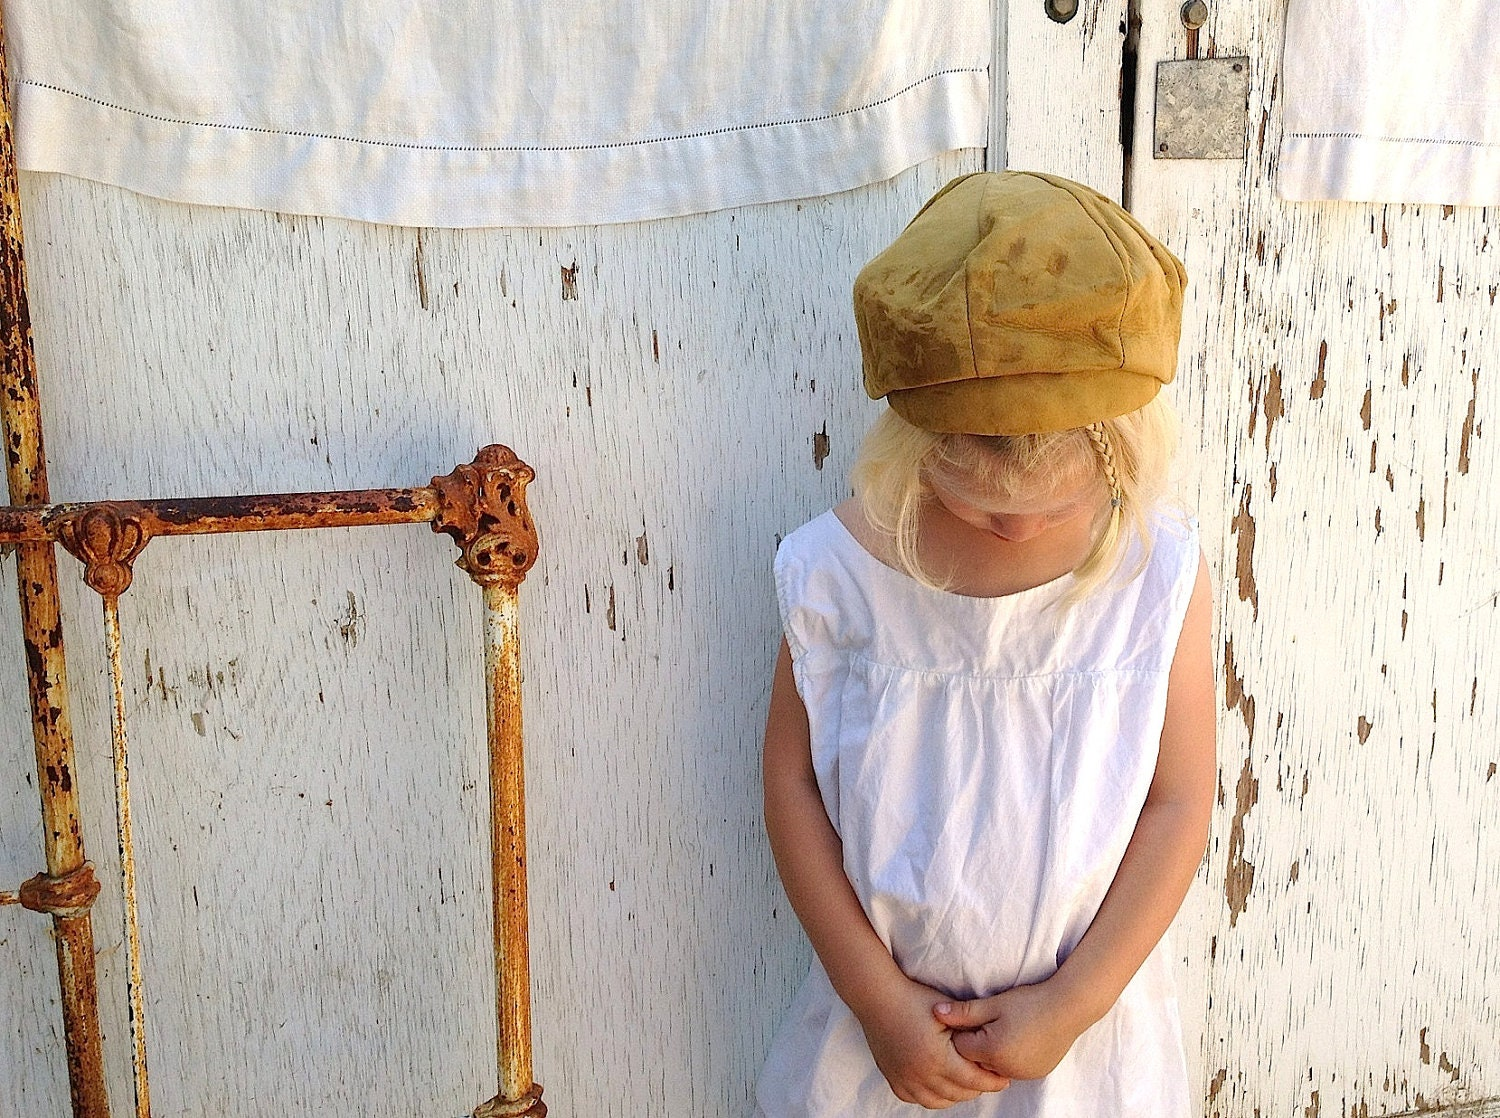 vintage light brown walnut tan leather newsboy cap hat halloween costume boho child boy girl fall colors winter - kateblossom